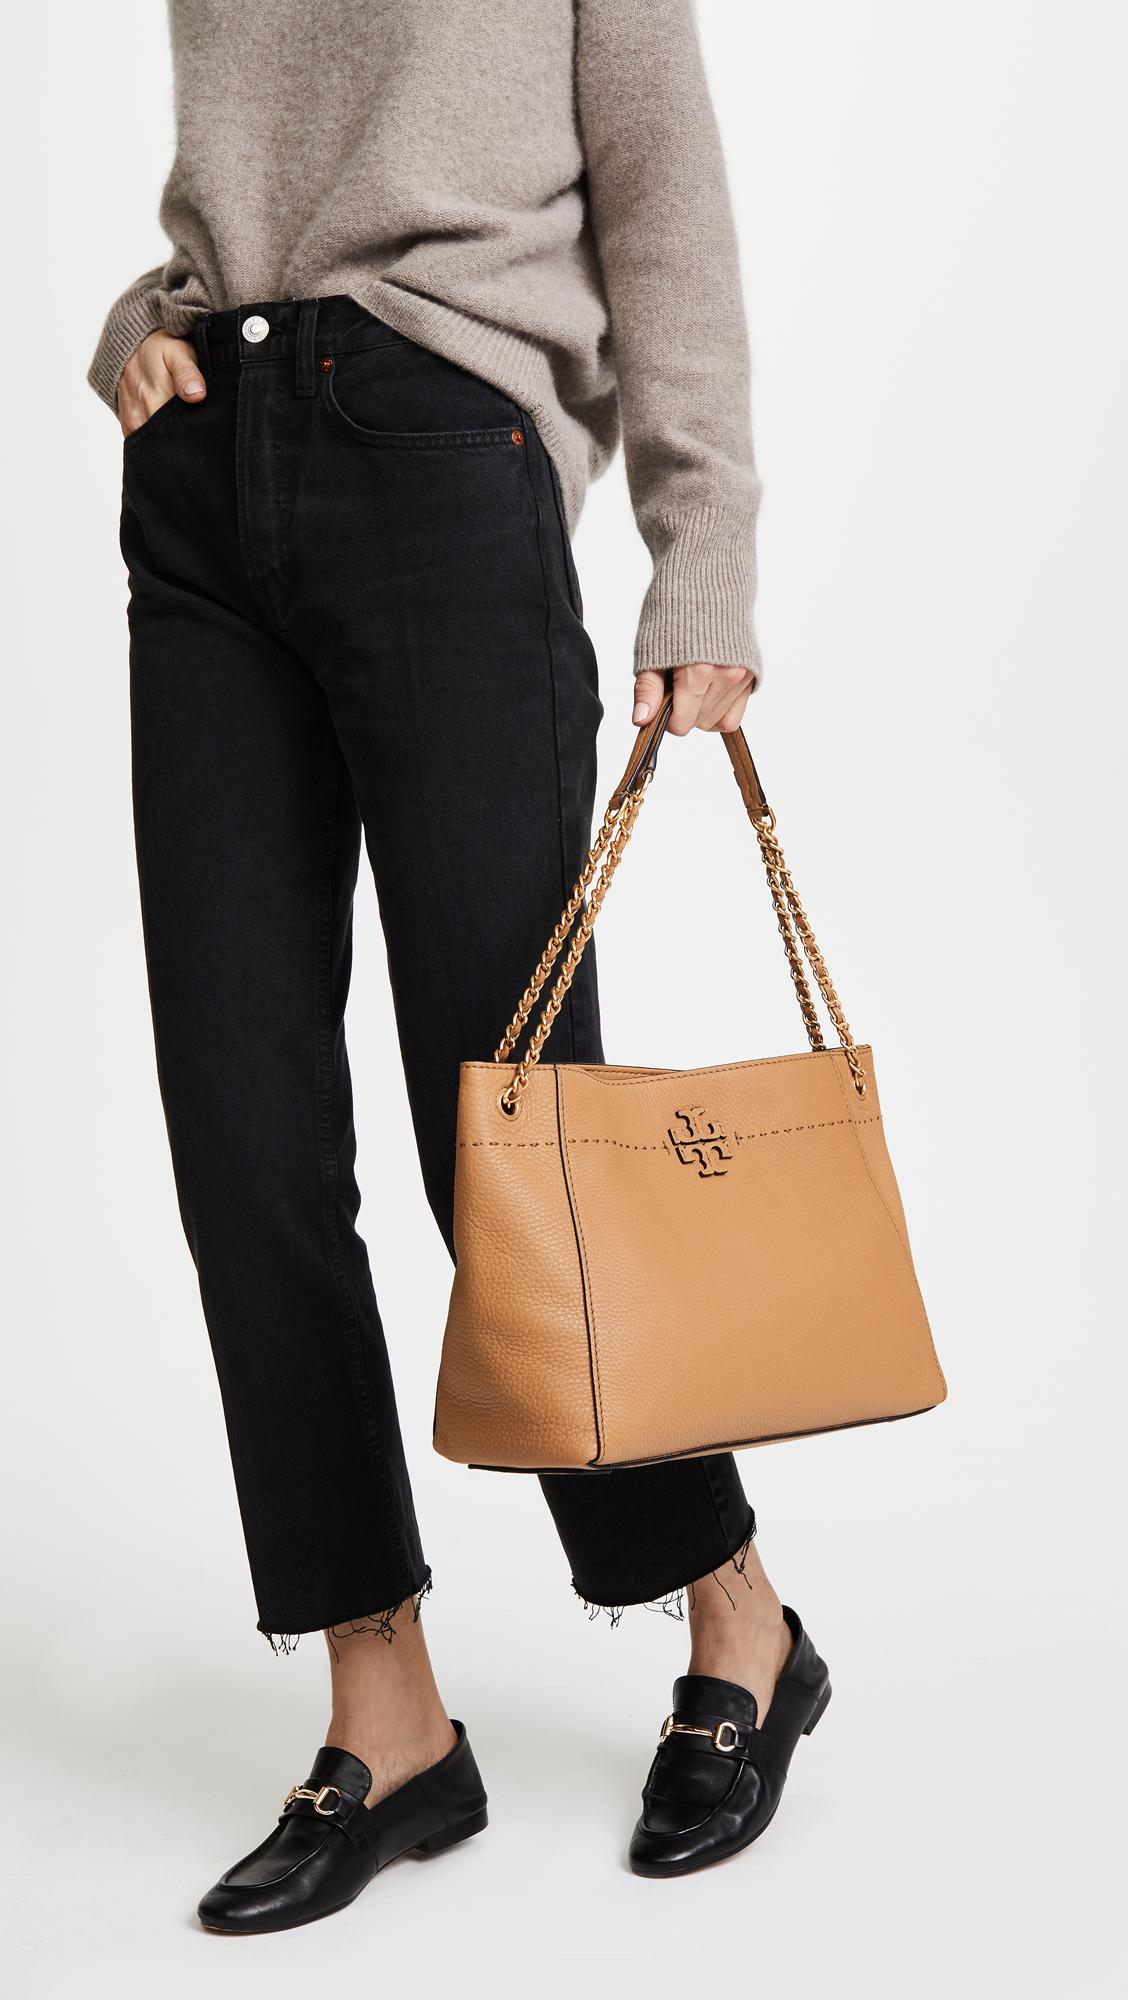 d5201b6a3874 Tory Burch Mcgraw Chain Shoulder Slouchy Tote - Lyst